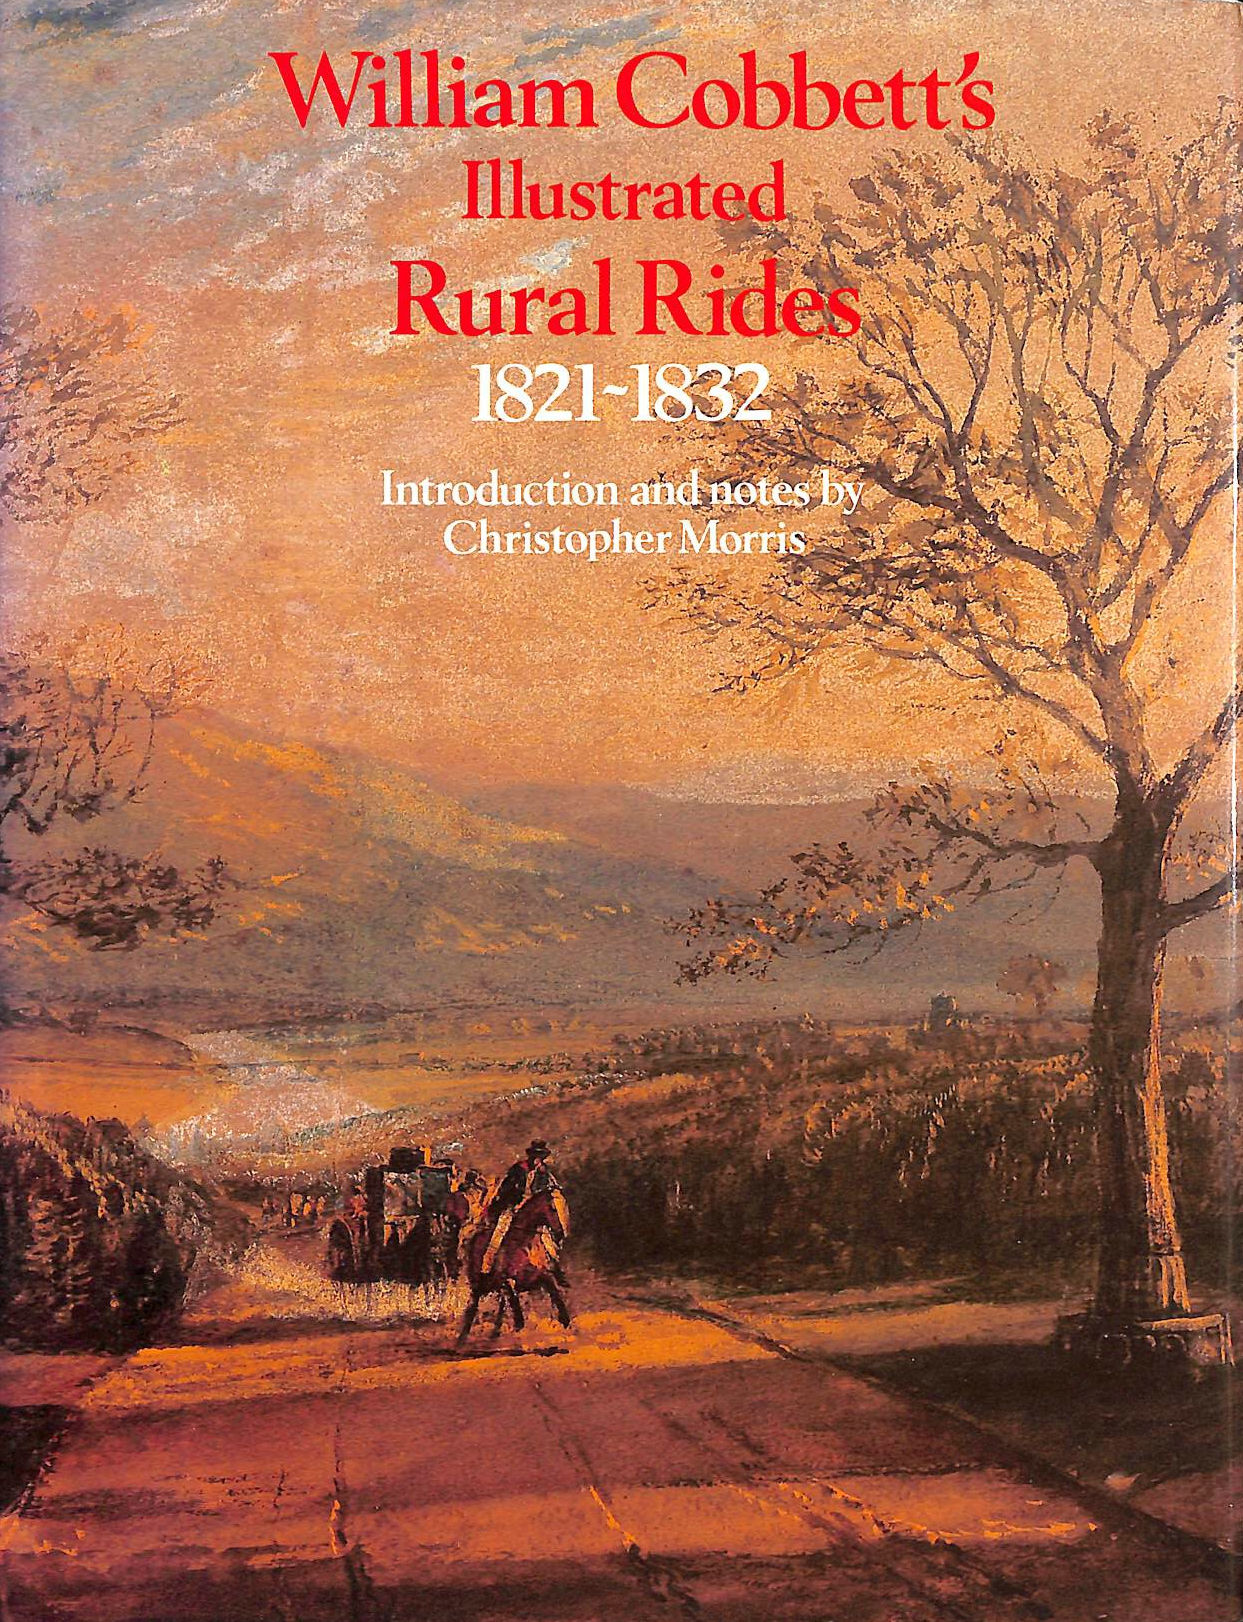 Image for Selections From William Cobbett's Illustrated Rural Rides 1821-1832